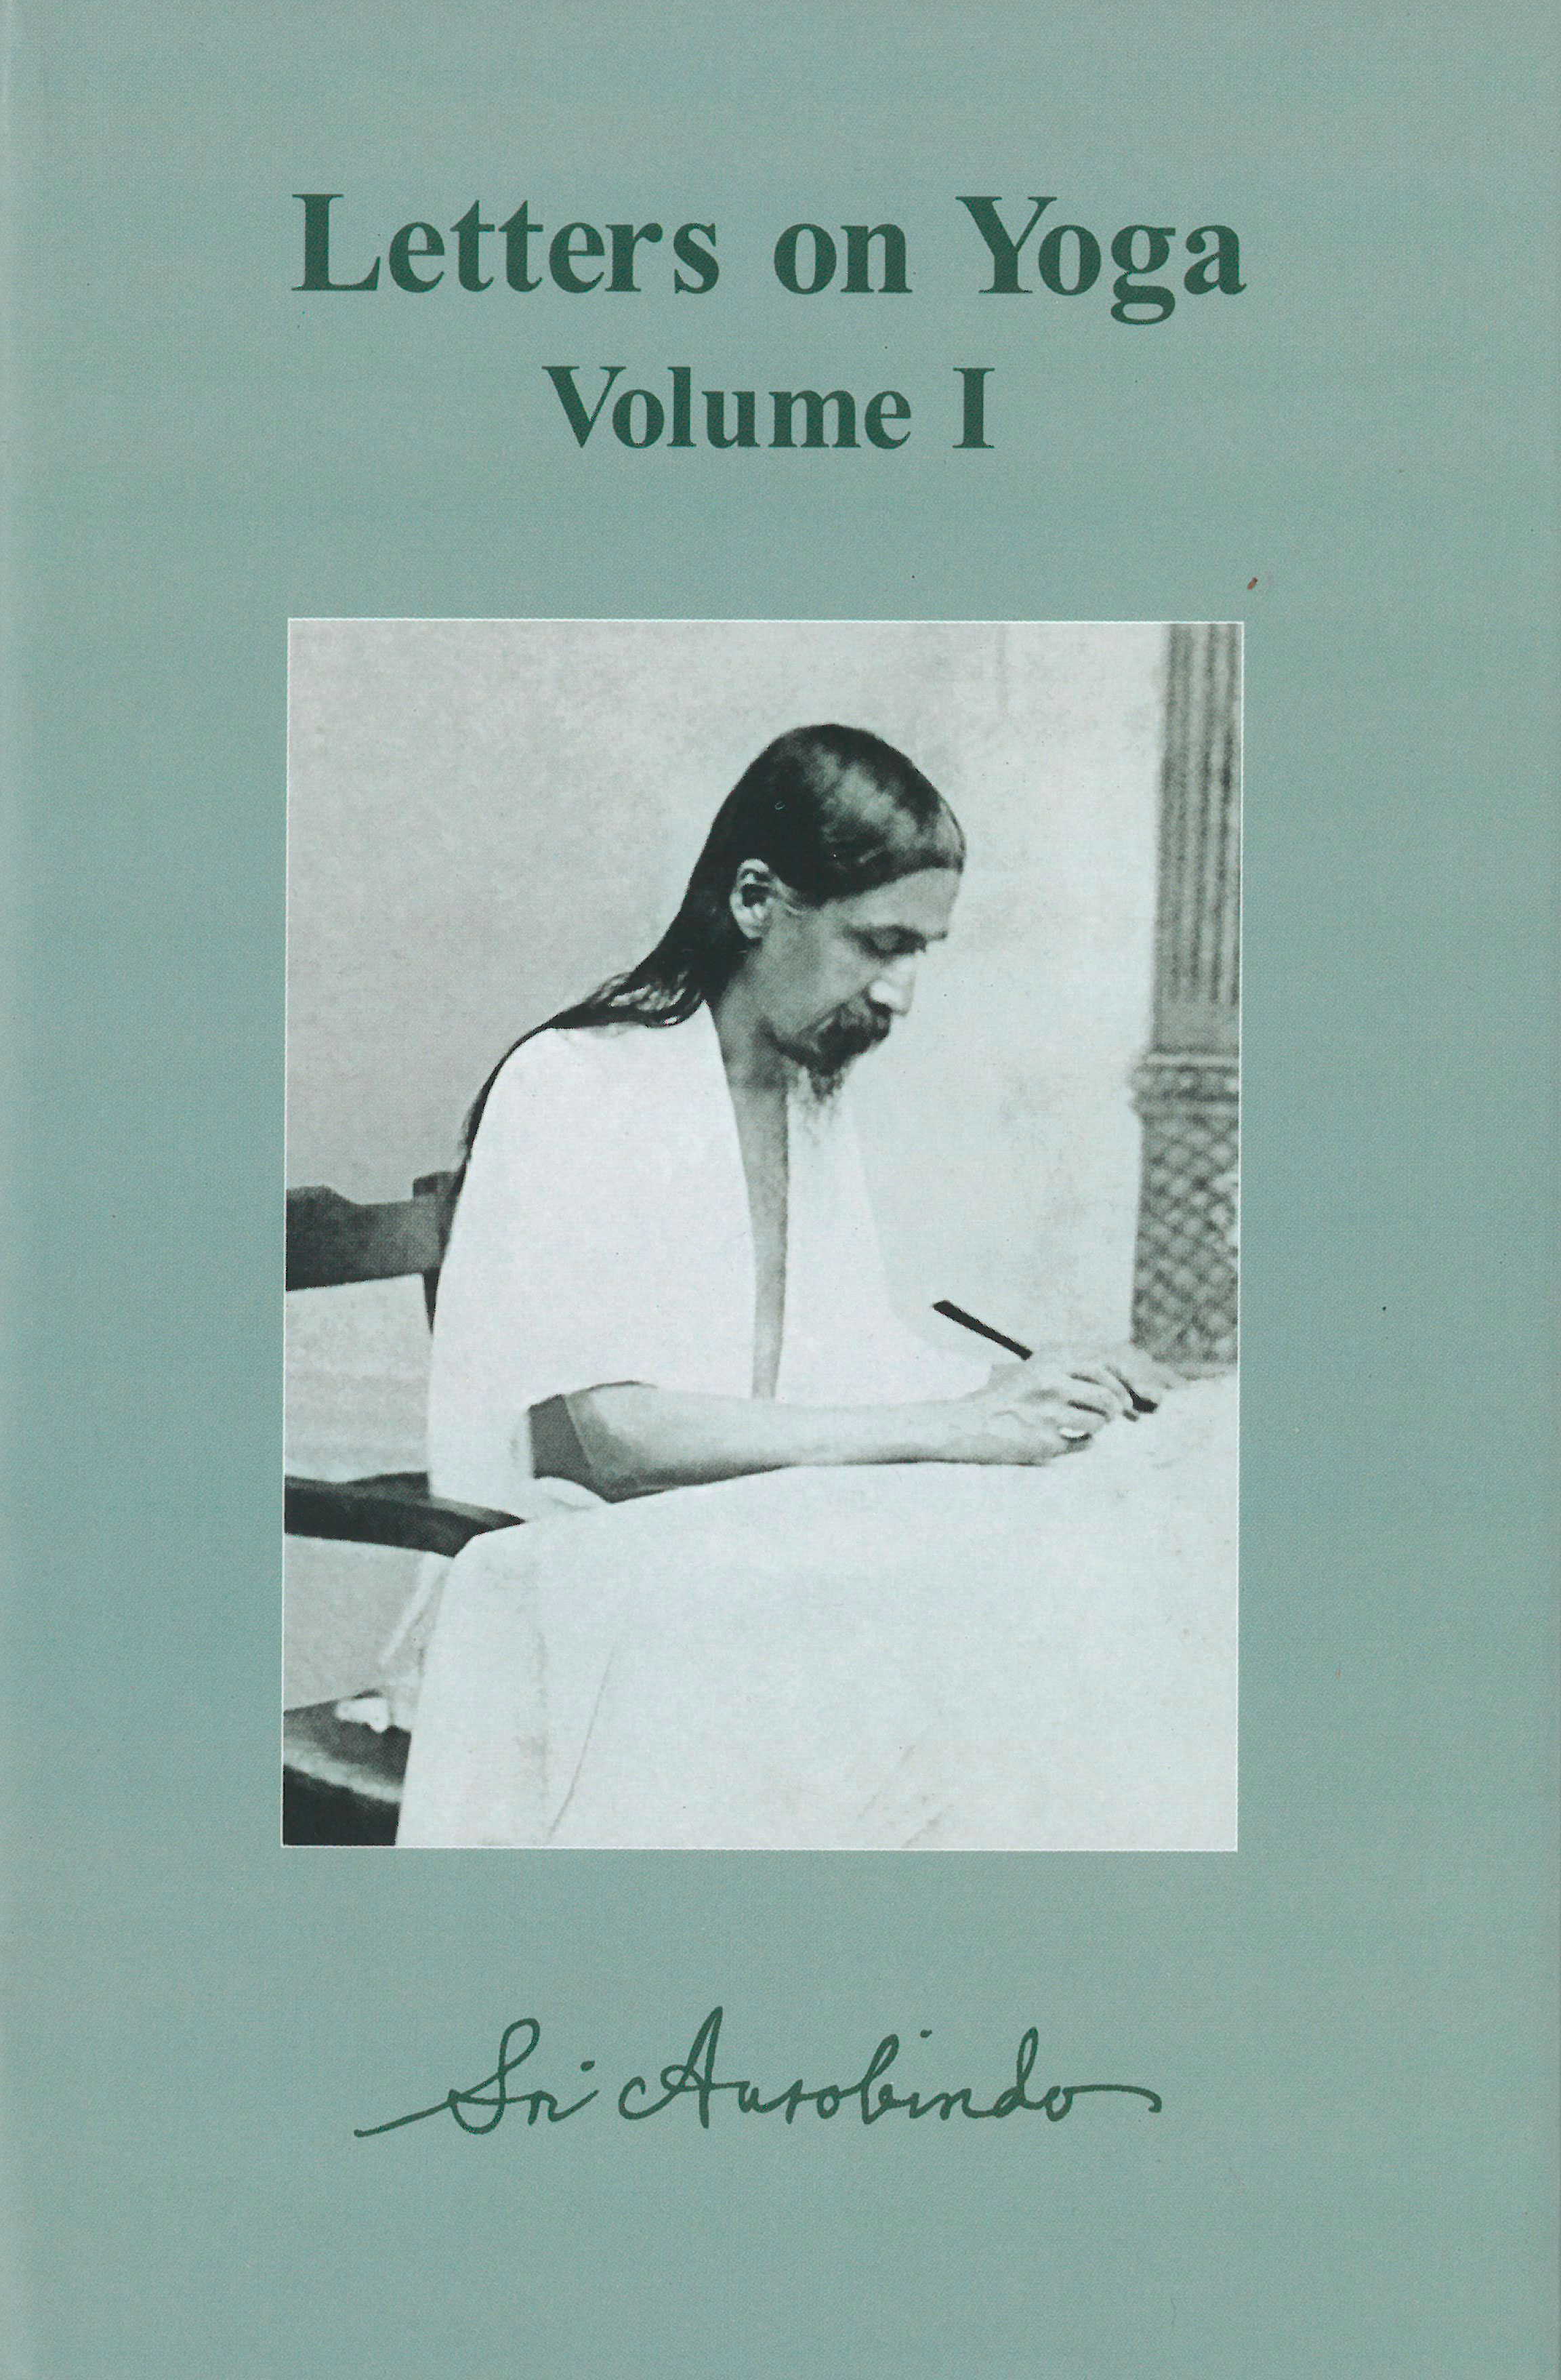 Letters on Yoga, Volume I